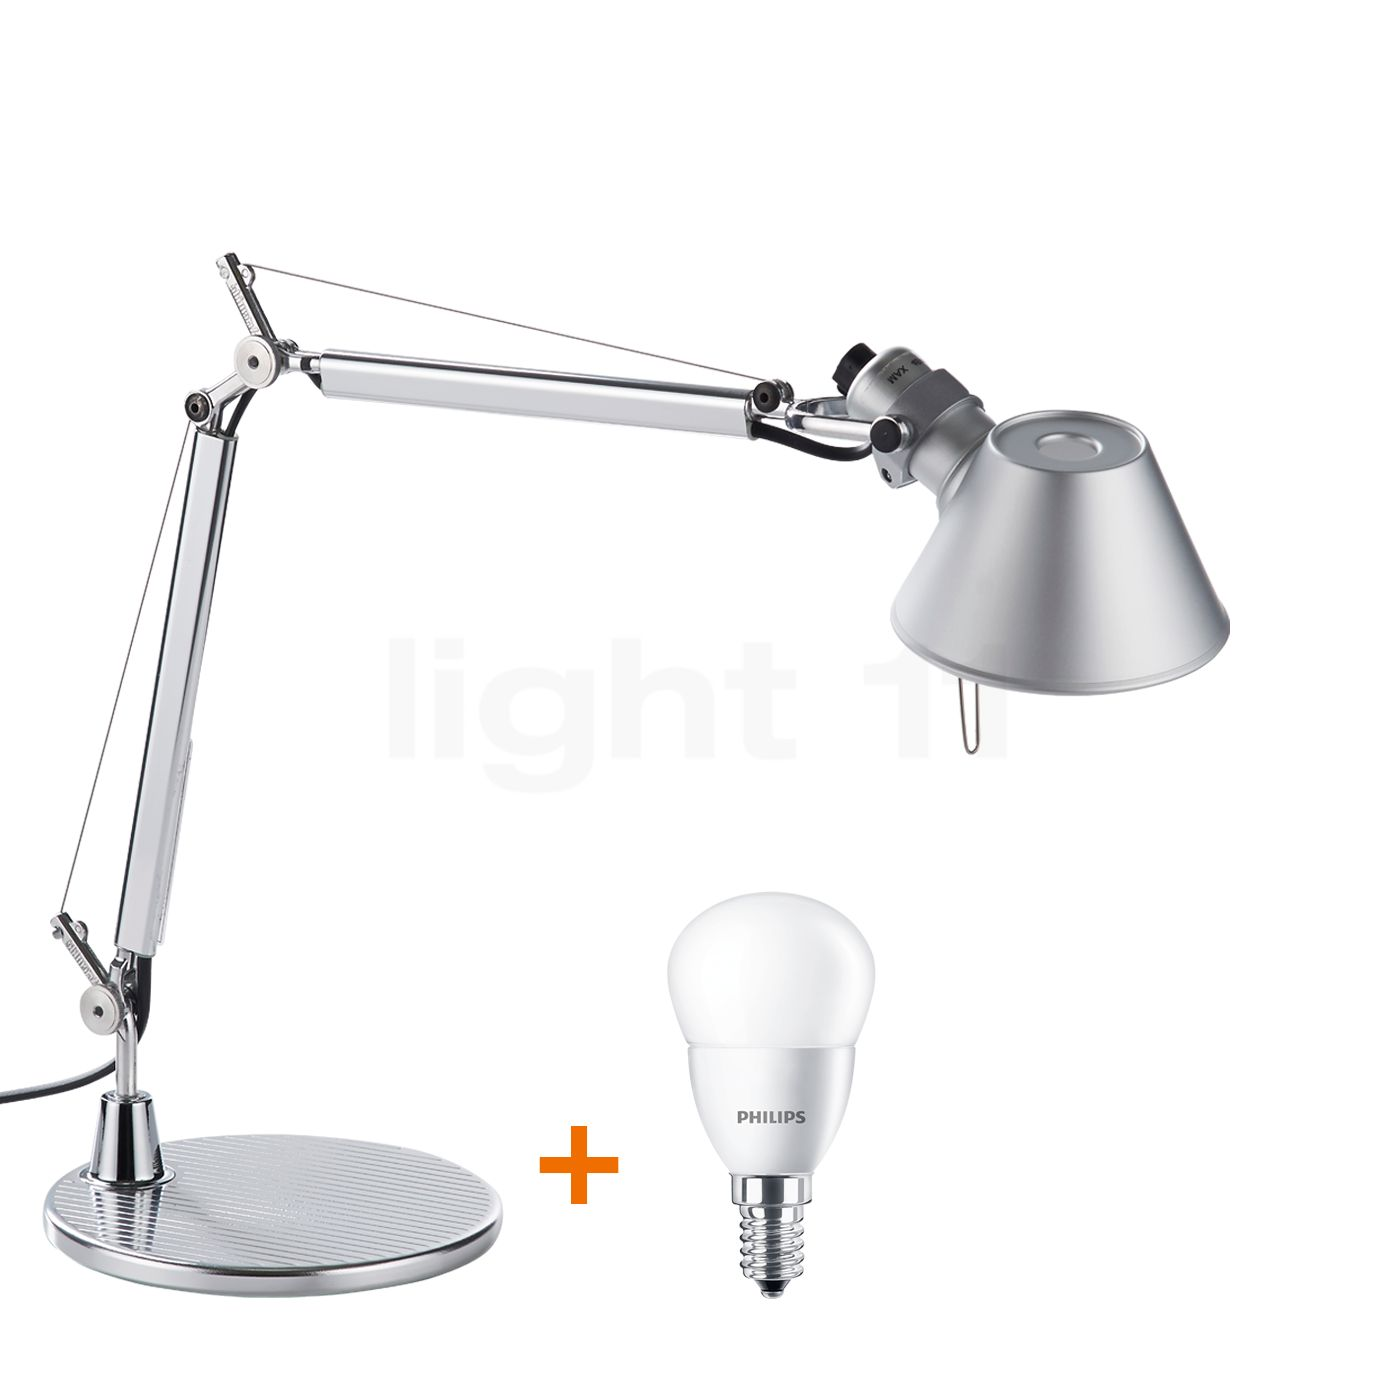 artemide tolomeo micro led preisvergleich leuchte g nstig kaufen bei. Black Bedroom Furniture Sets. Home Design Ideas